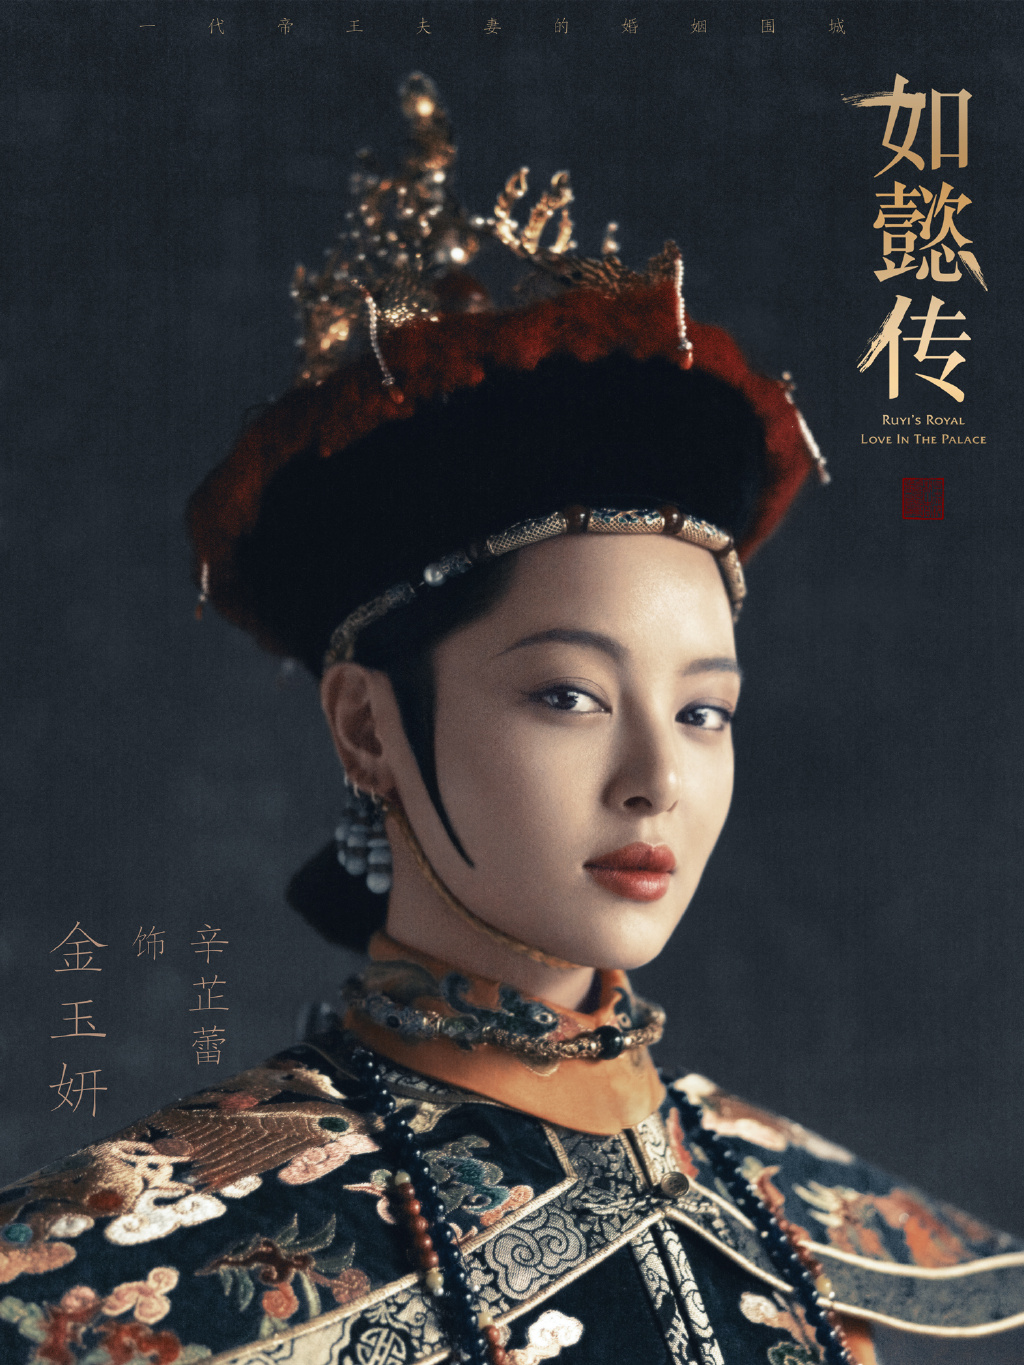 The royal family of Ruyi's Royal Love in the Palace led by ...